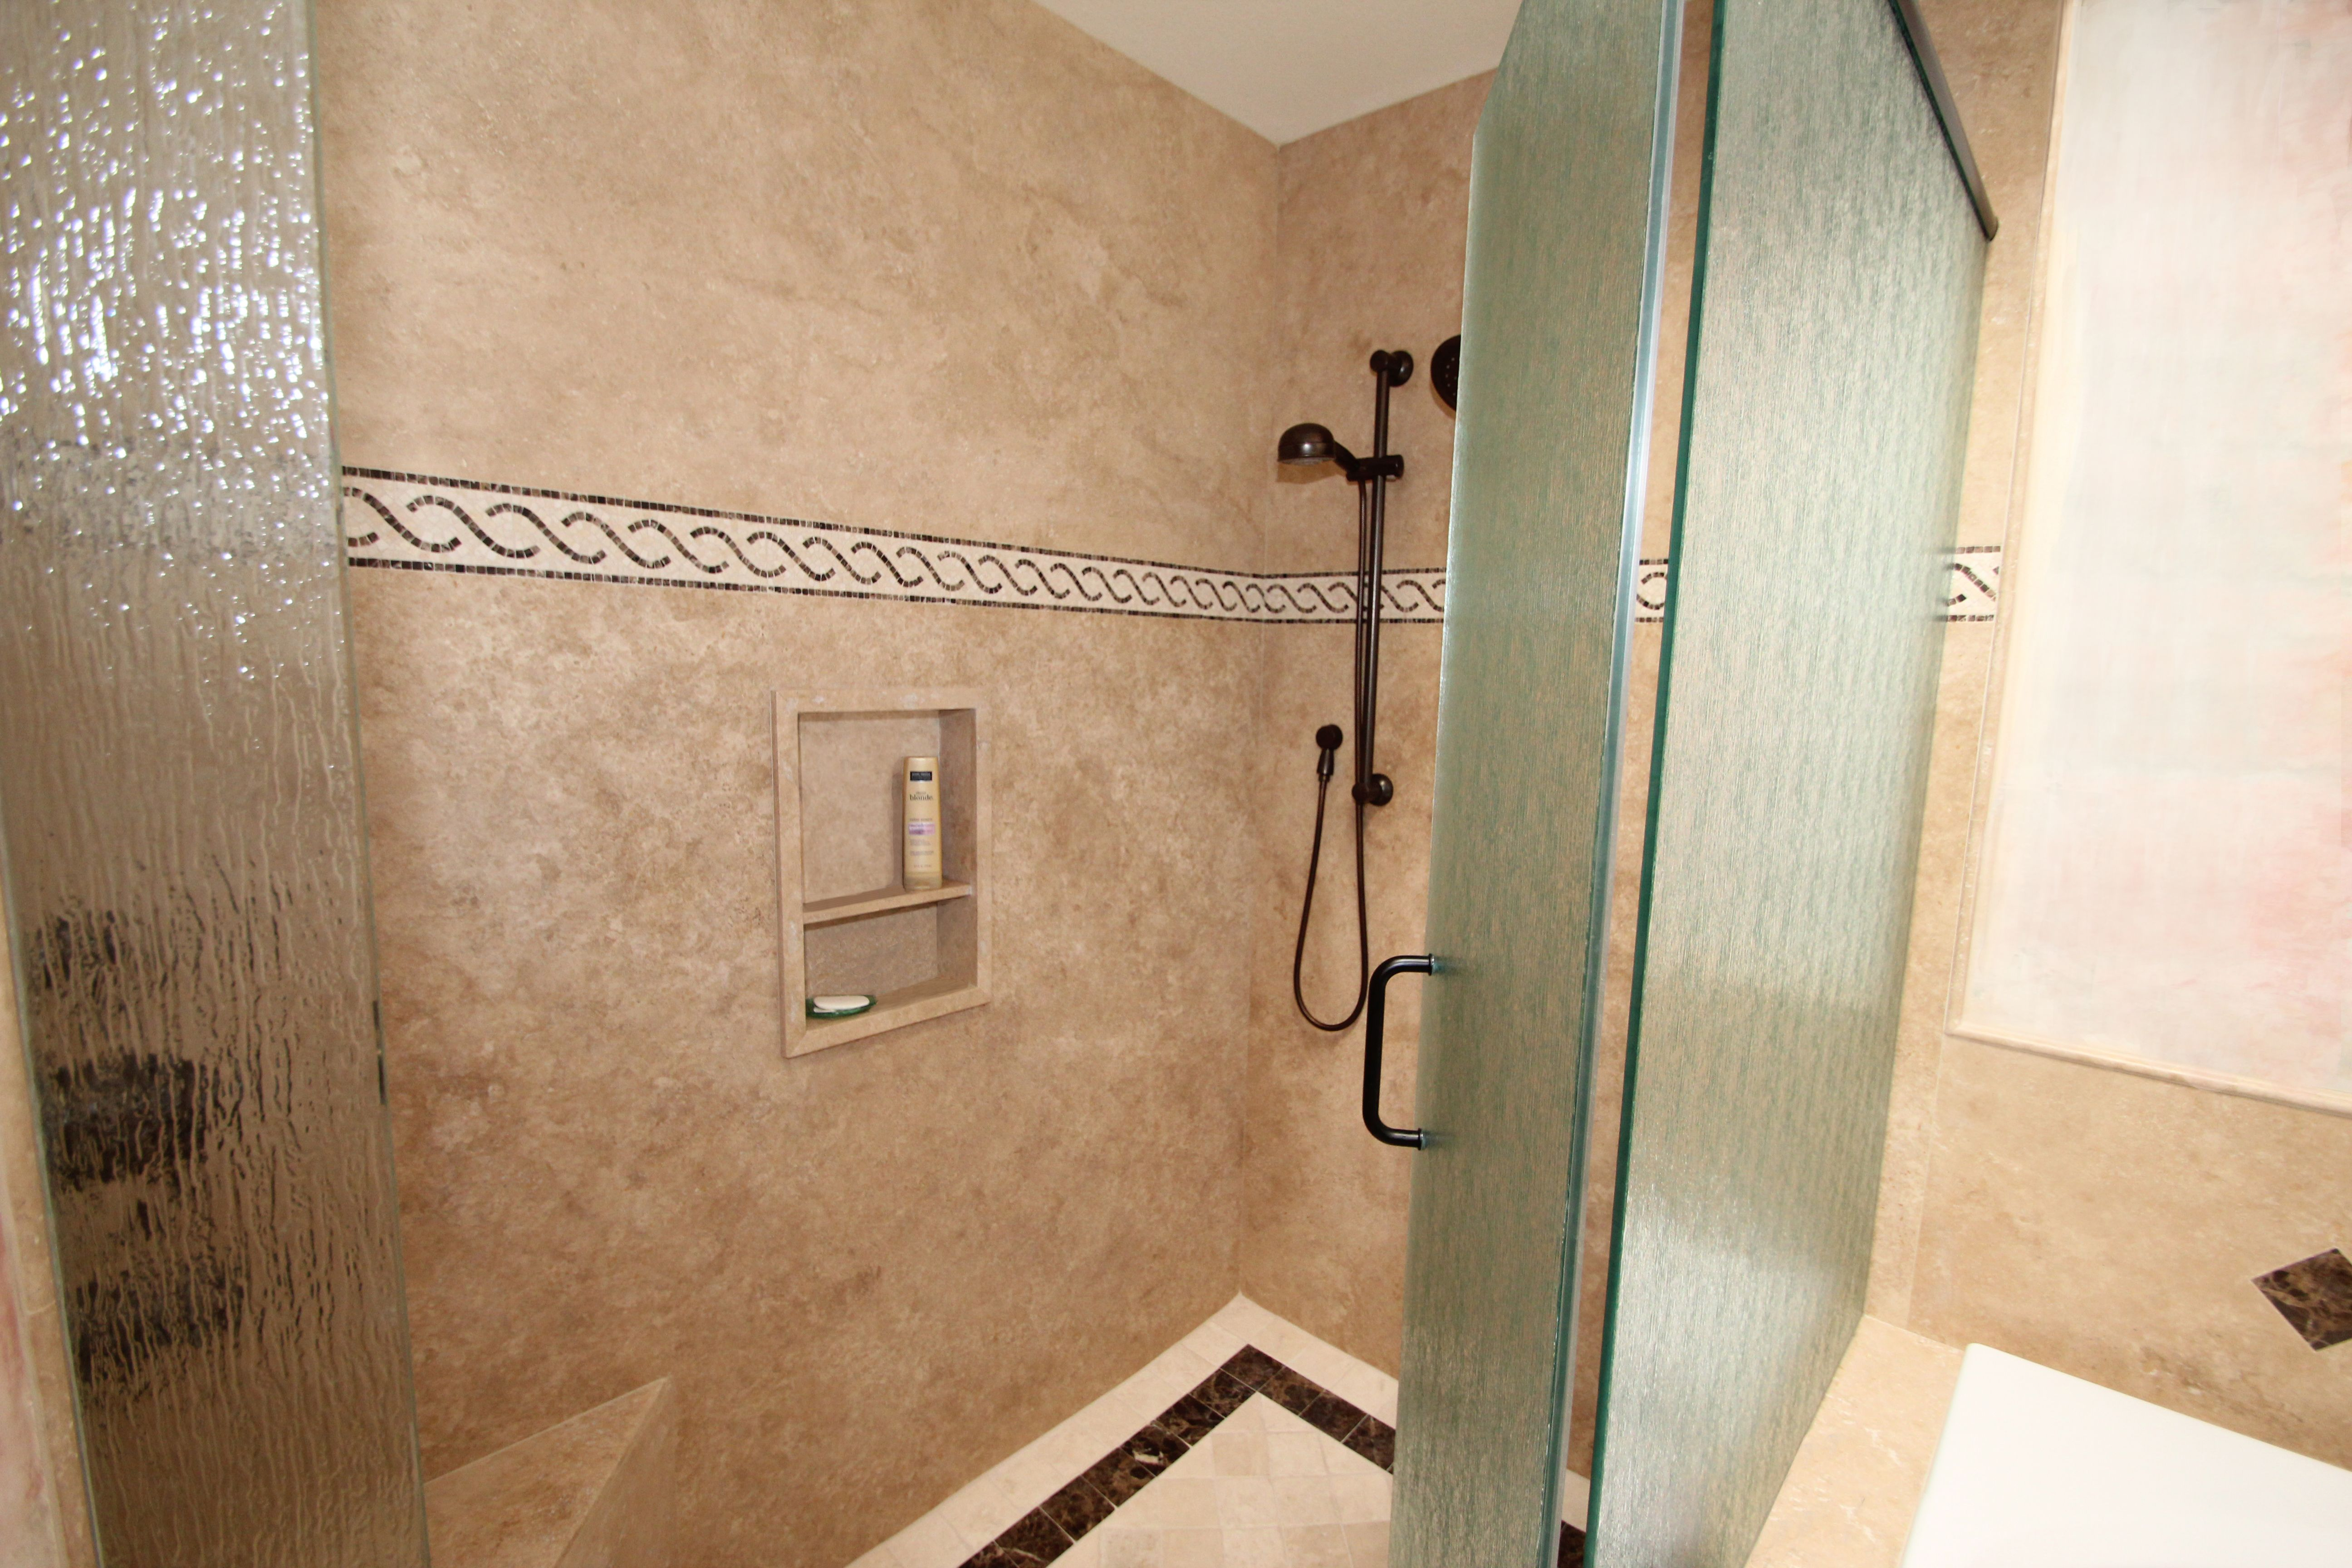 Groutless showers are soooo easy to maintain and so beautiful too groutless showers are soooo easy to maintain and so beautiful too dailygadgetfo Choice Image